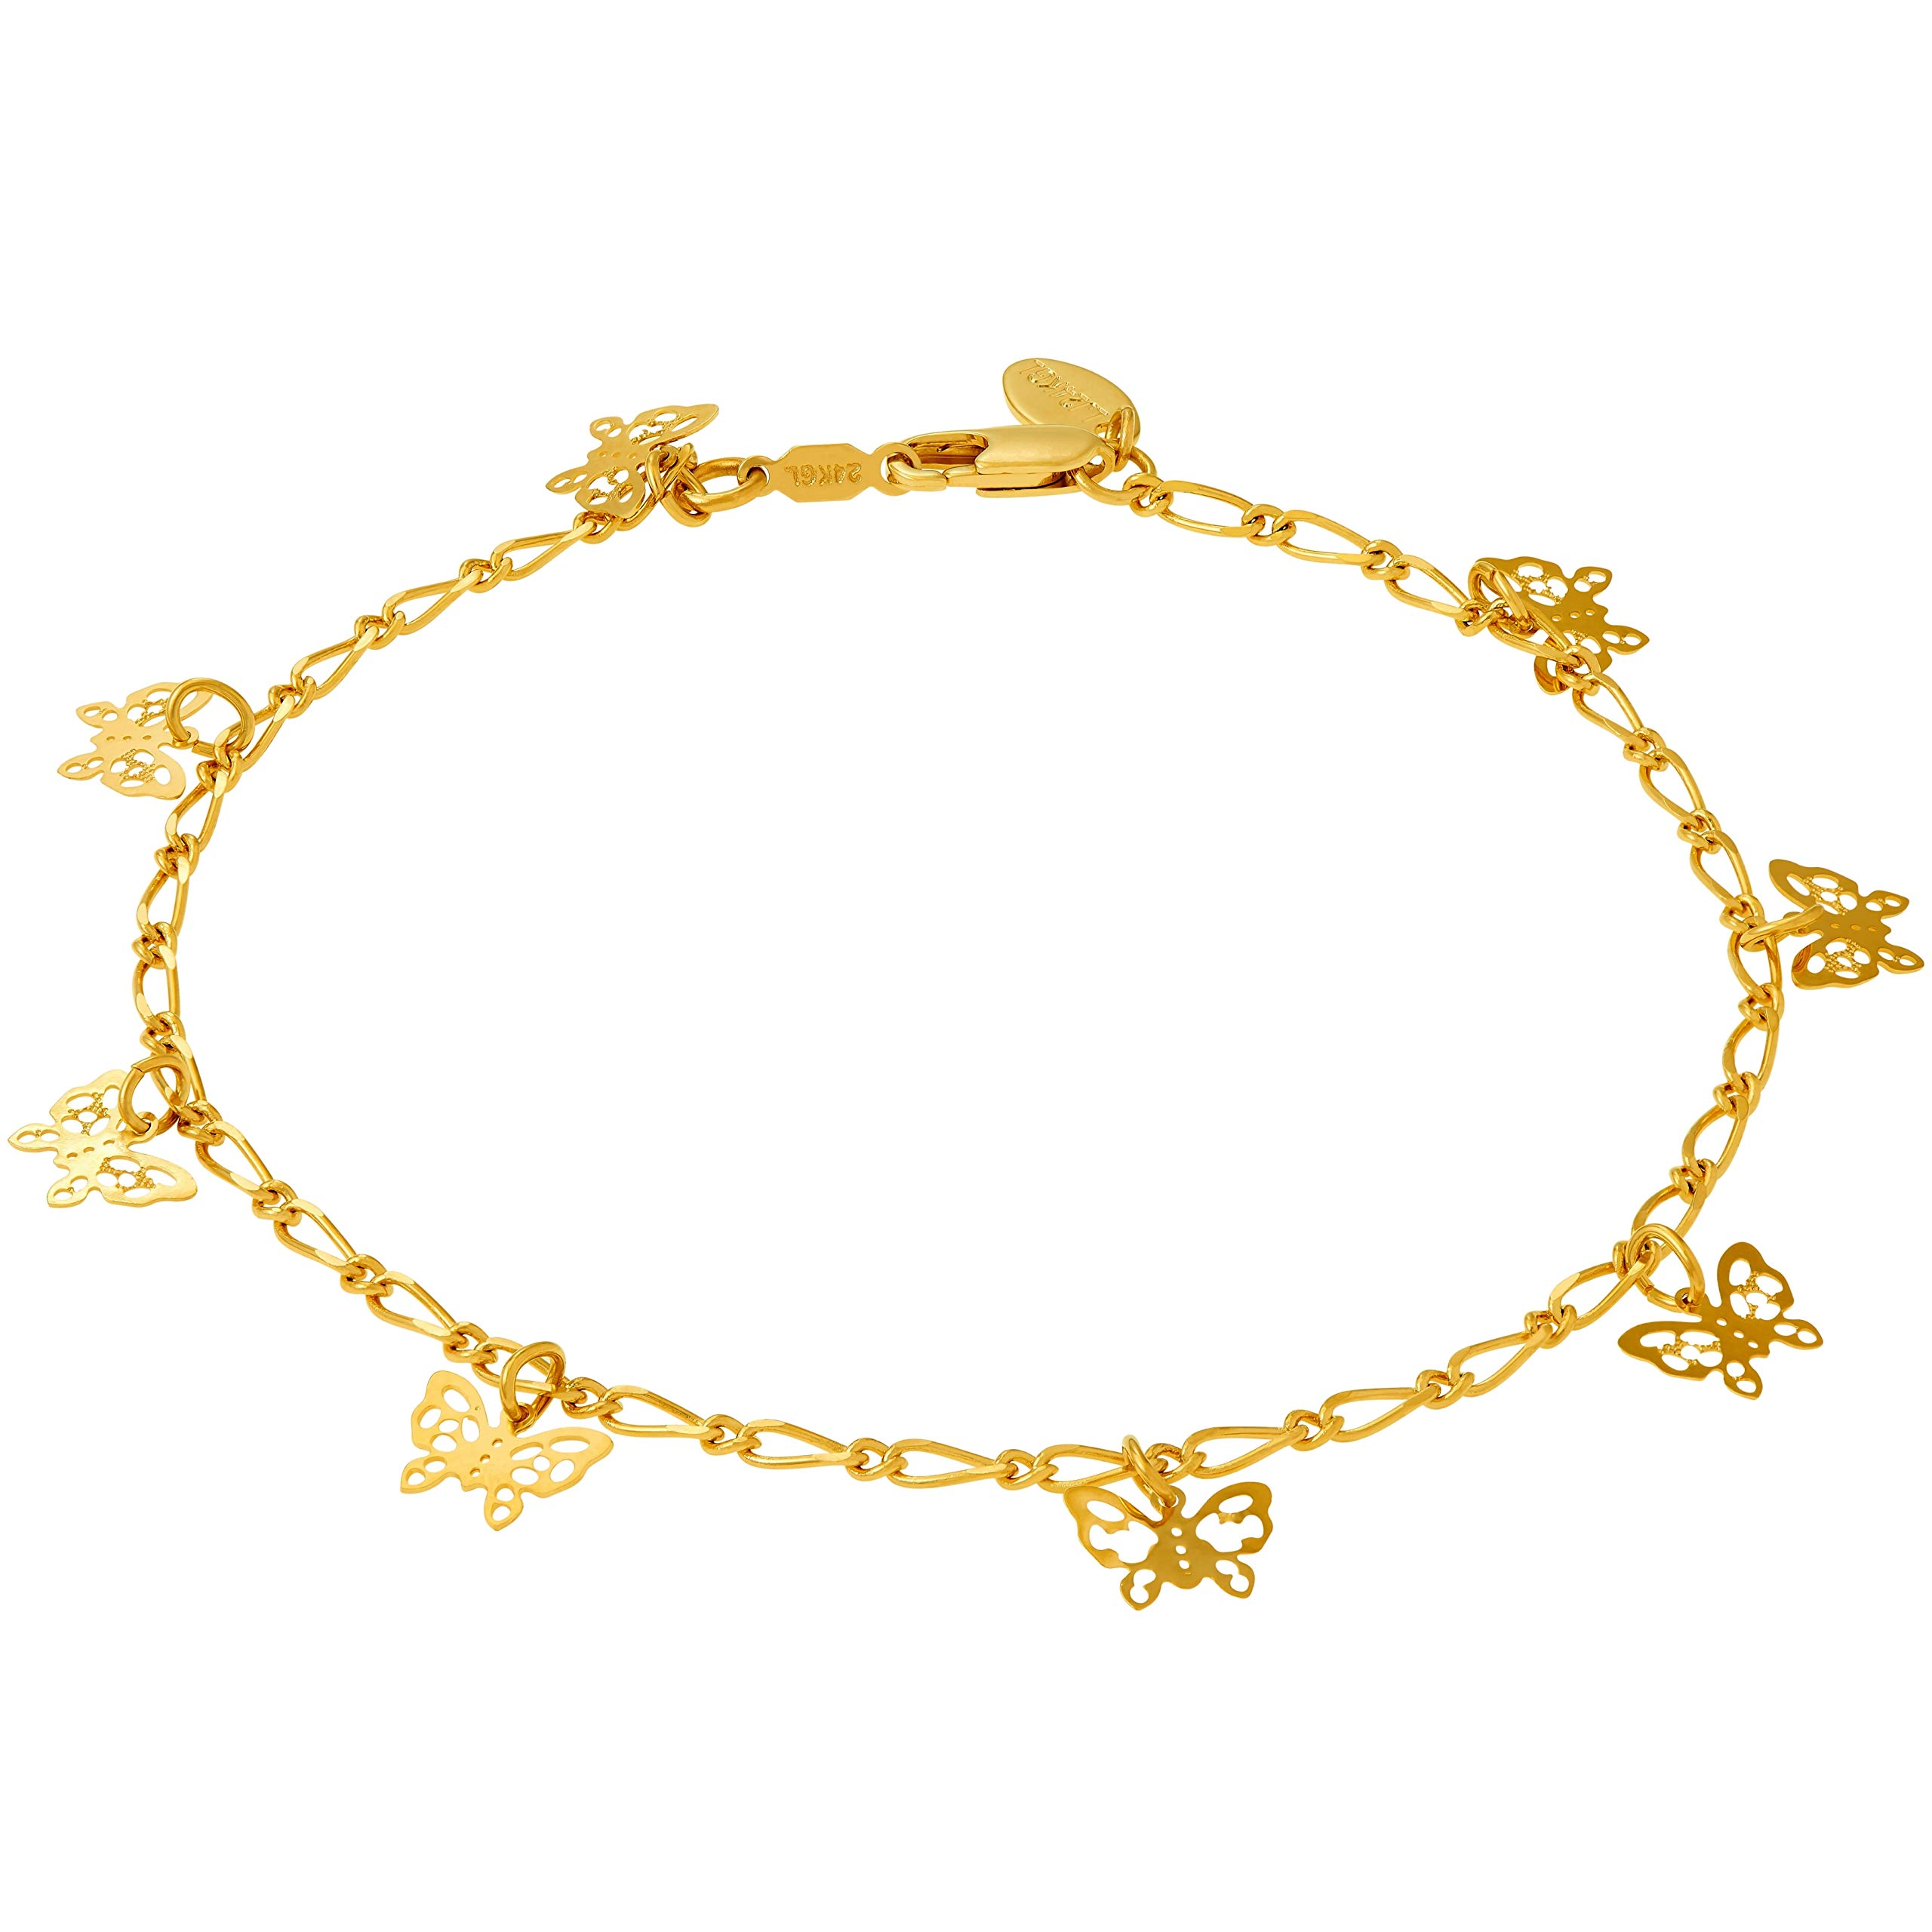 Lifetime Jewelry 24k Gold Plated Butterfly Ankle Bracelet to Wear at Party or Beach for Women and Teen Girls - Cute Durable Anklet - 9 10 and 11 inches - Made in USA (9.0)